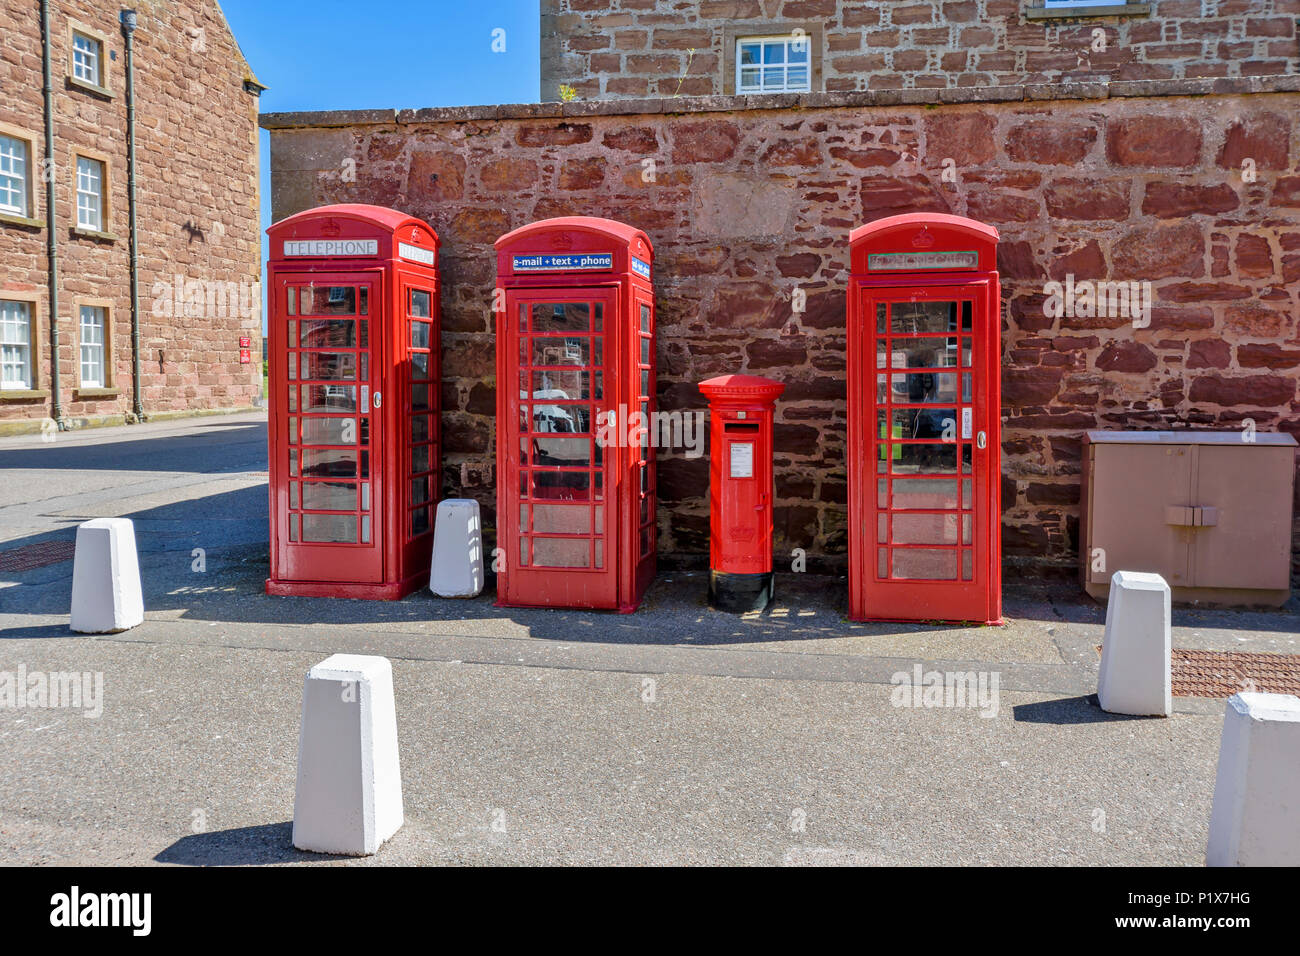 FORT GEORGE INVERNESS SCOTLAND THE MAIN BARRACK BUILDINGS AND THREE RED TELEPHONE BOXES - Stock Image